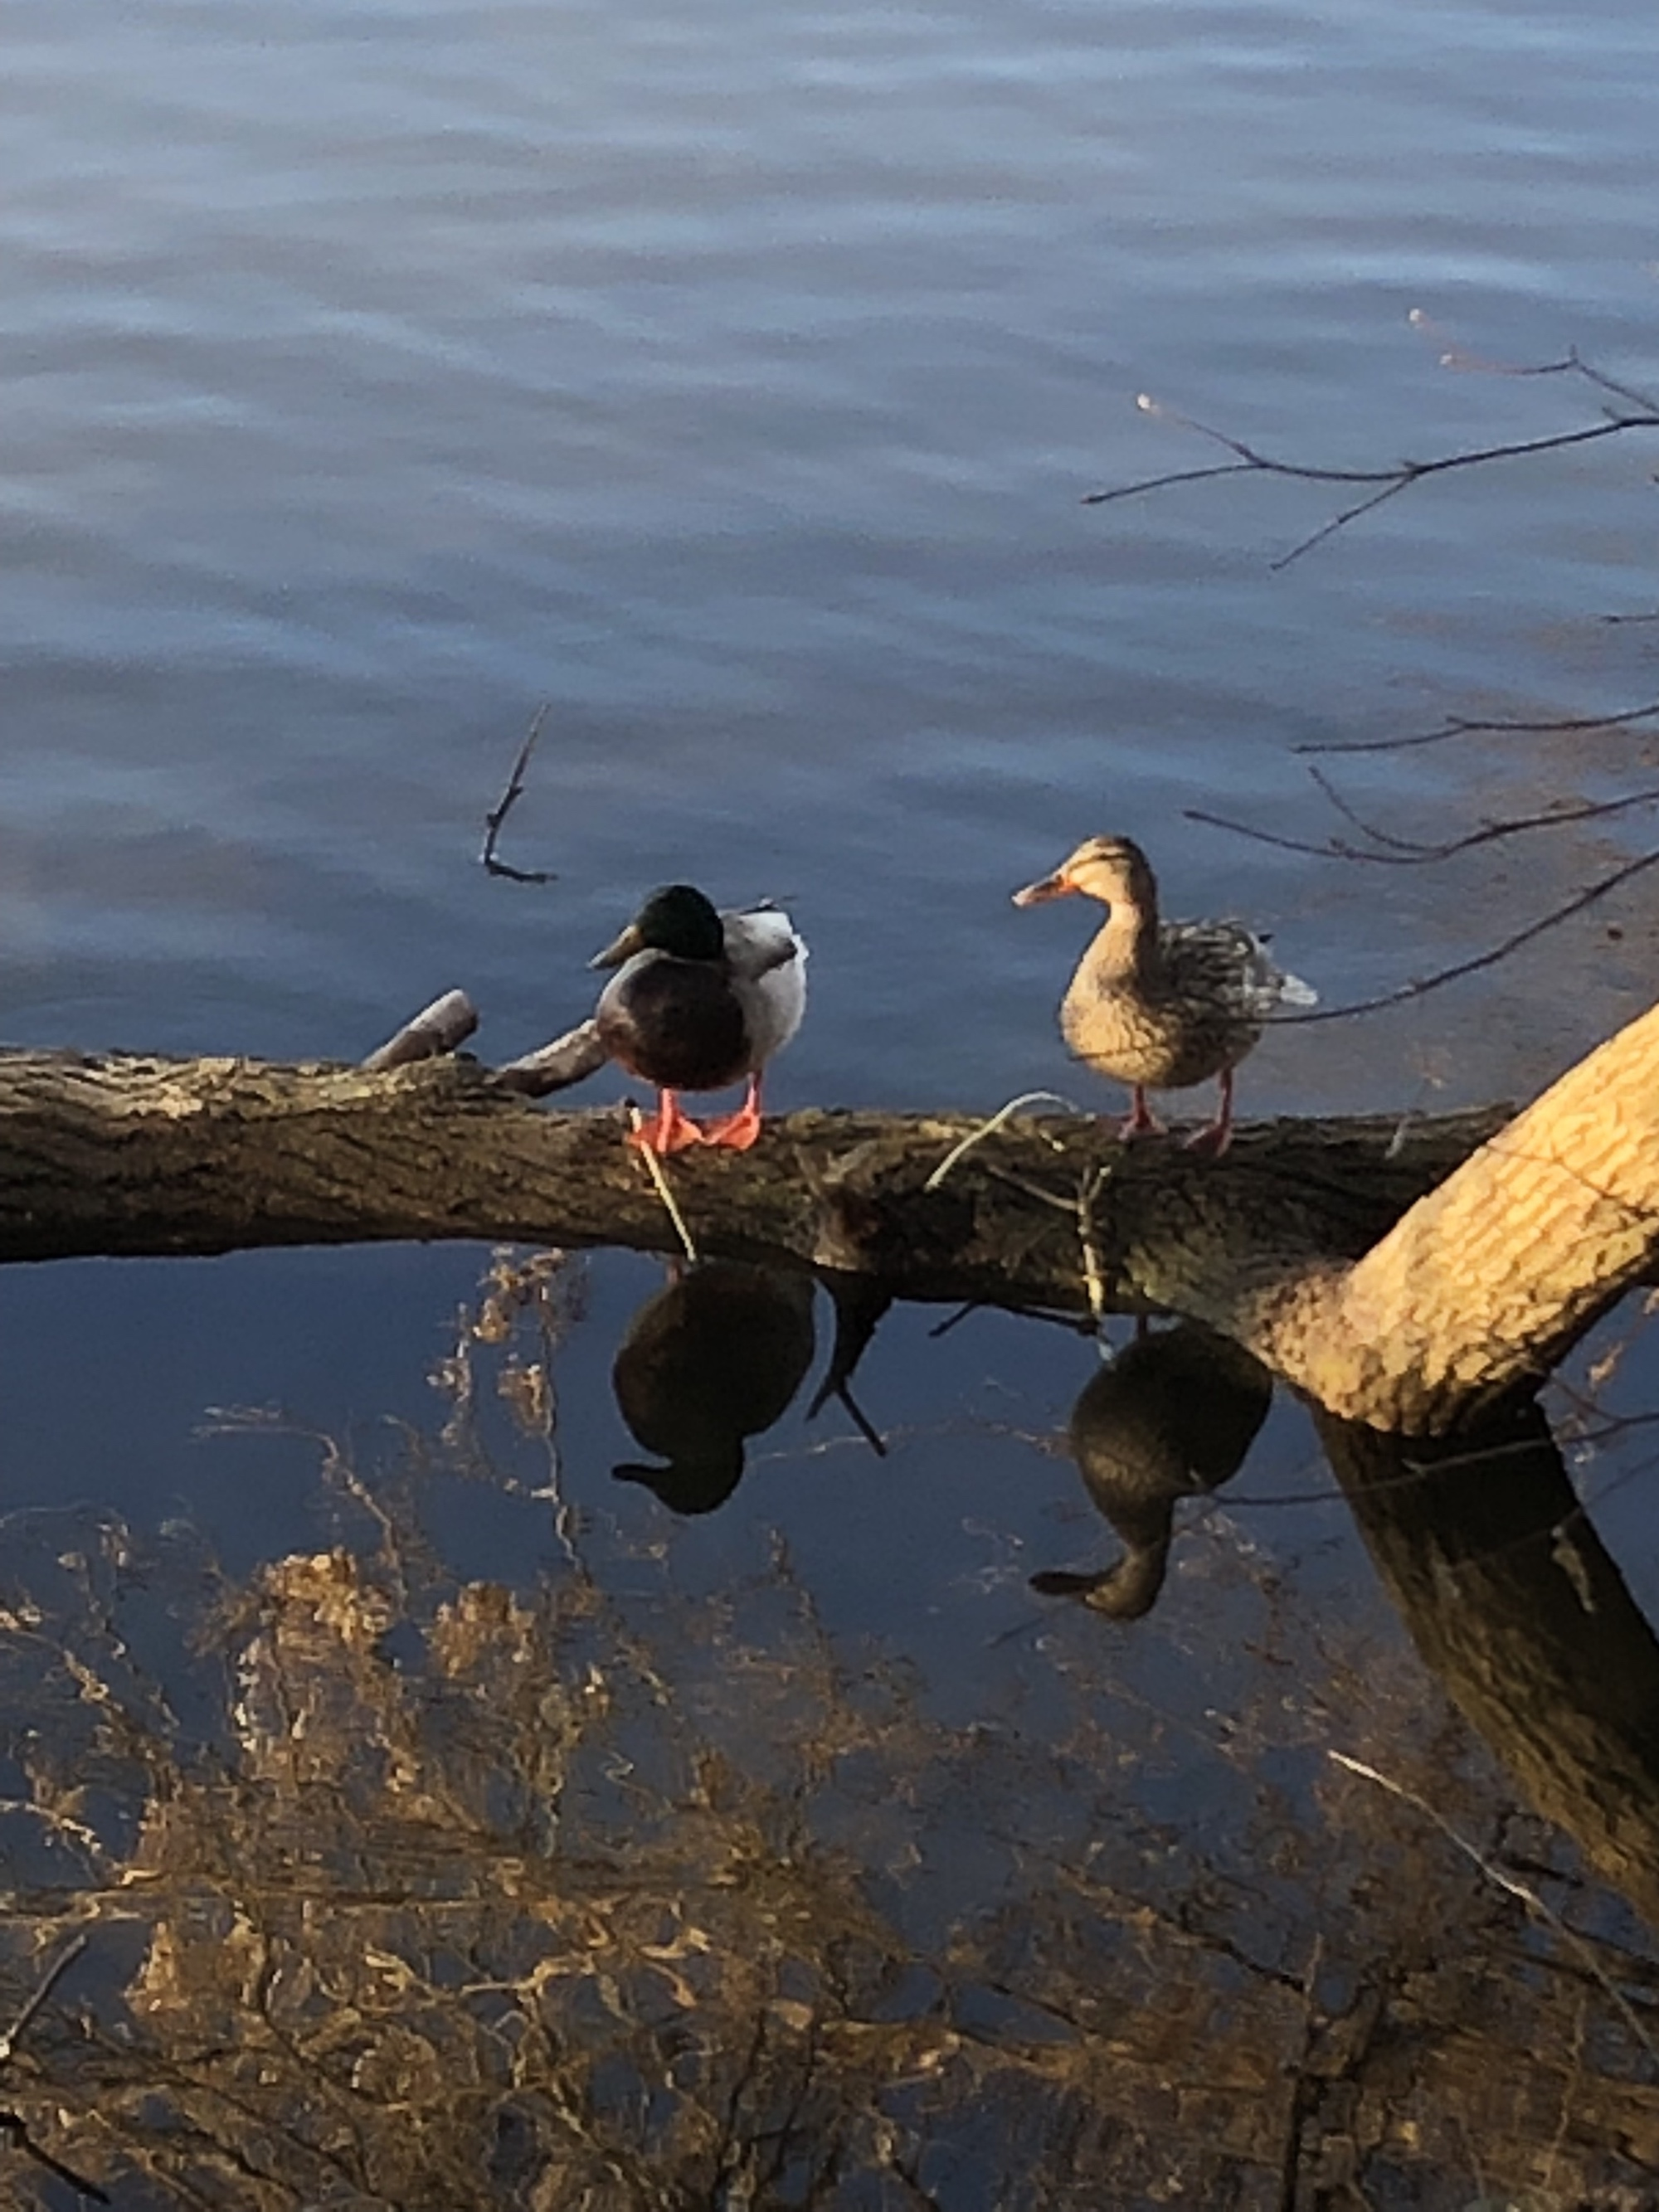 Ducks on a log in Lake Wingra on April 25, 2018.